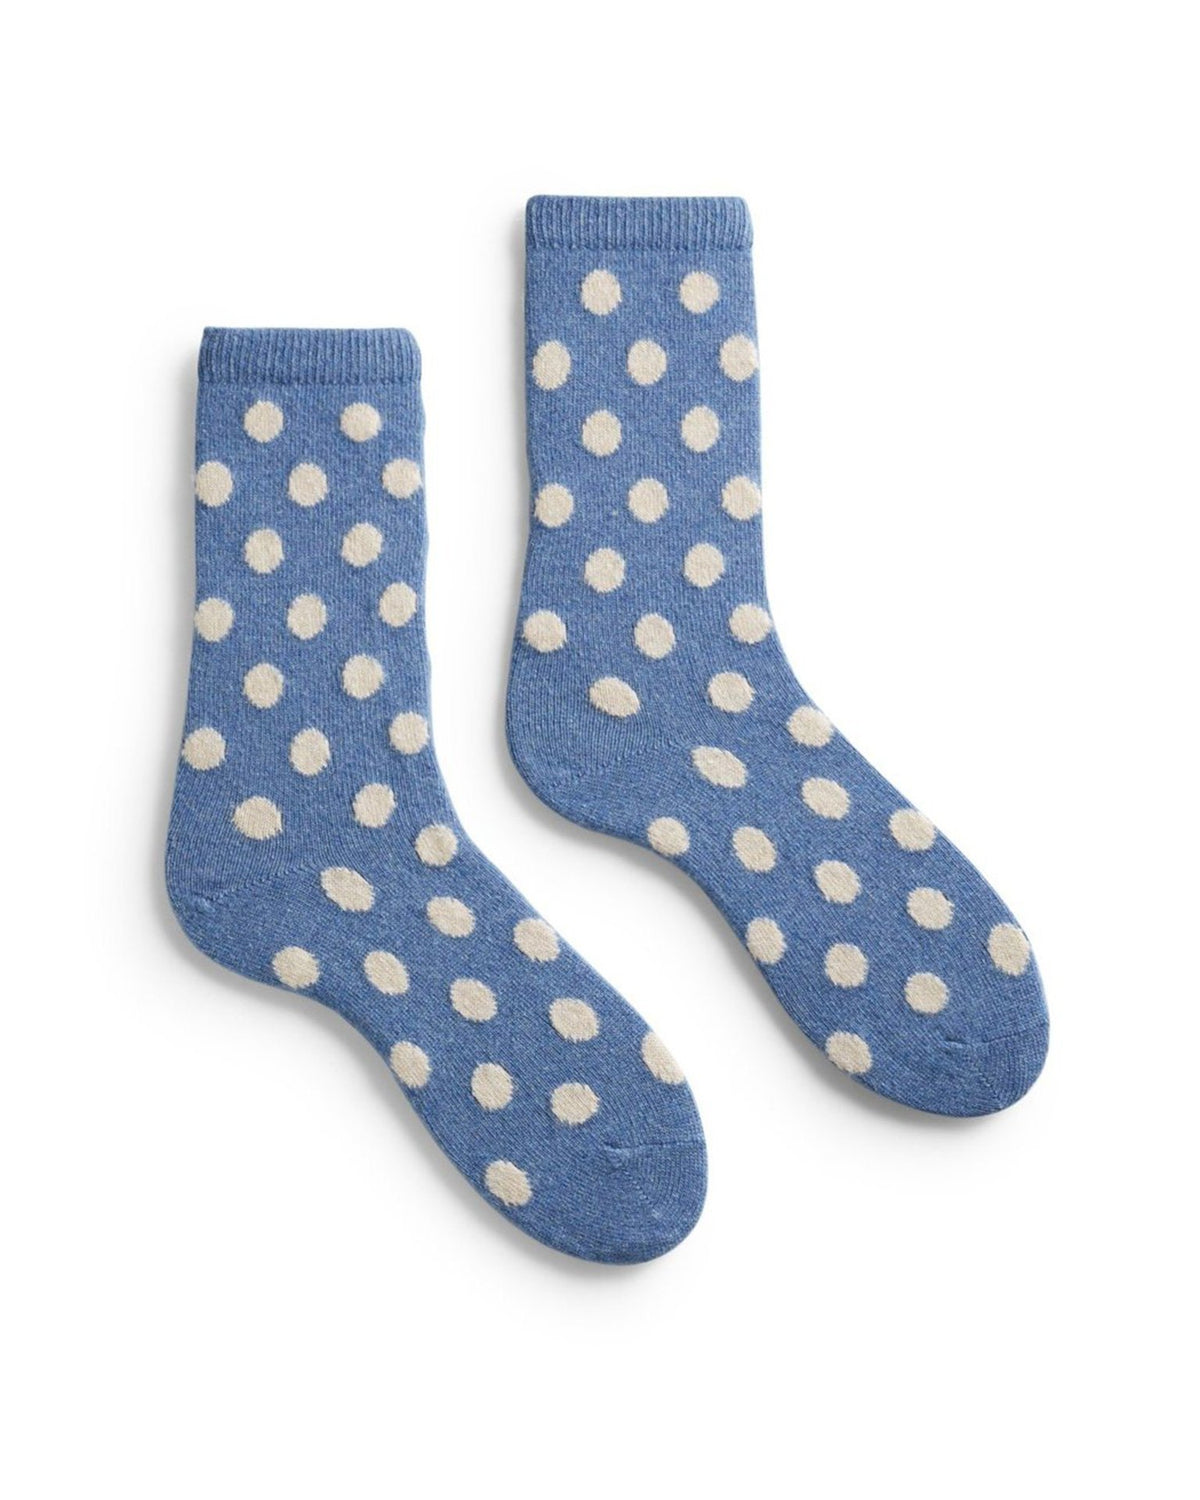 Lisa B. Accessories Chambray / O/S Dot Socks